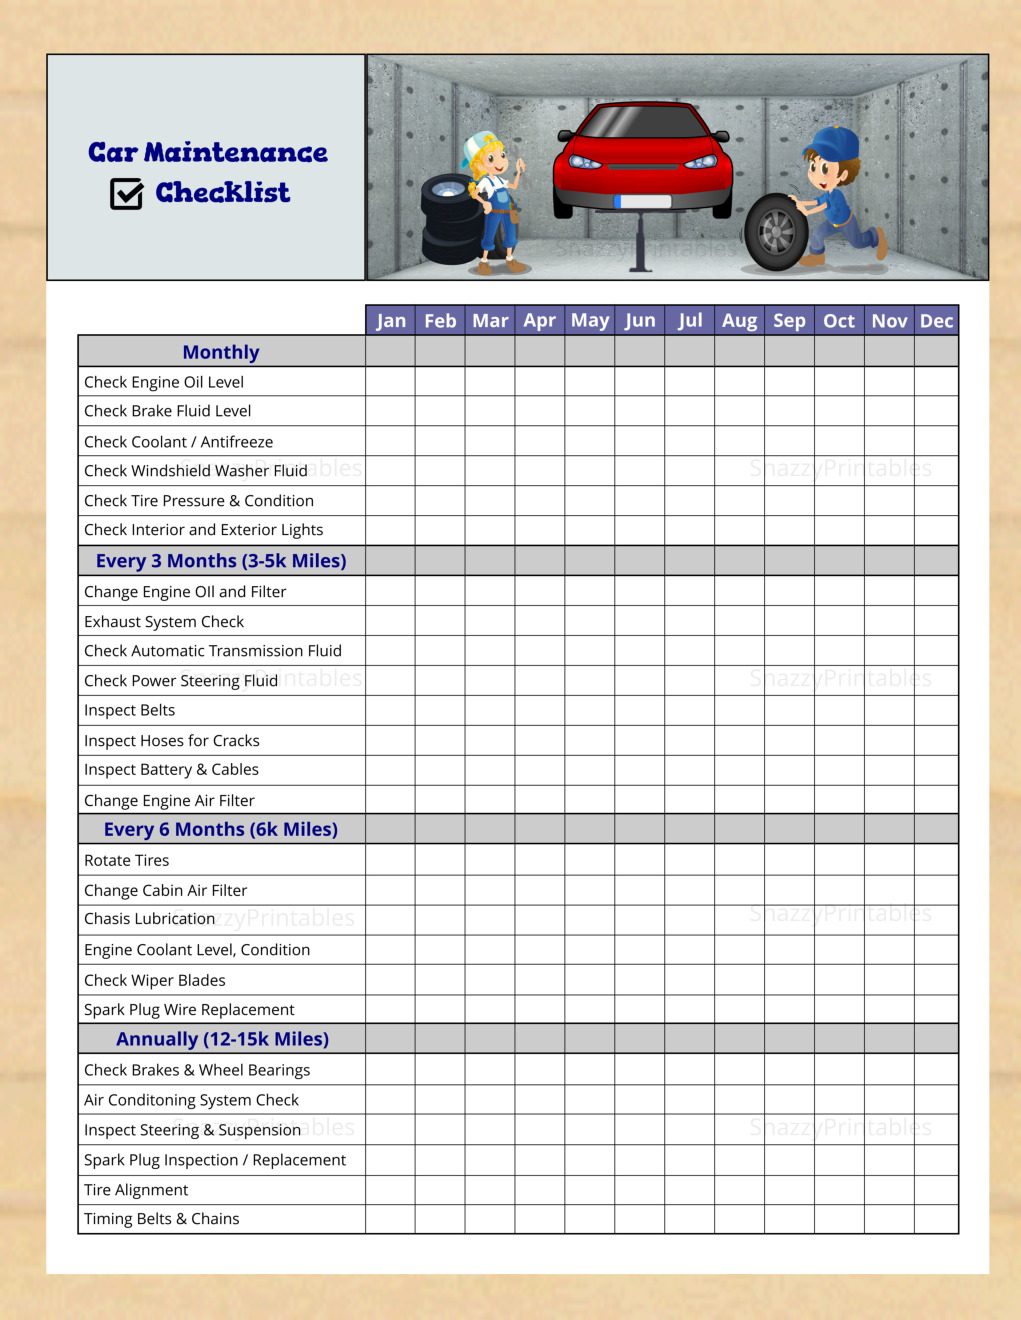 Car Maintenance Checklist Printable - Instant Download PDF